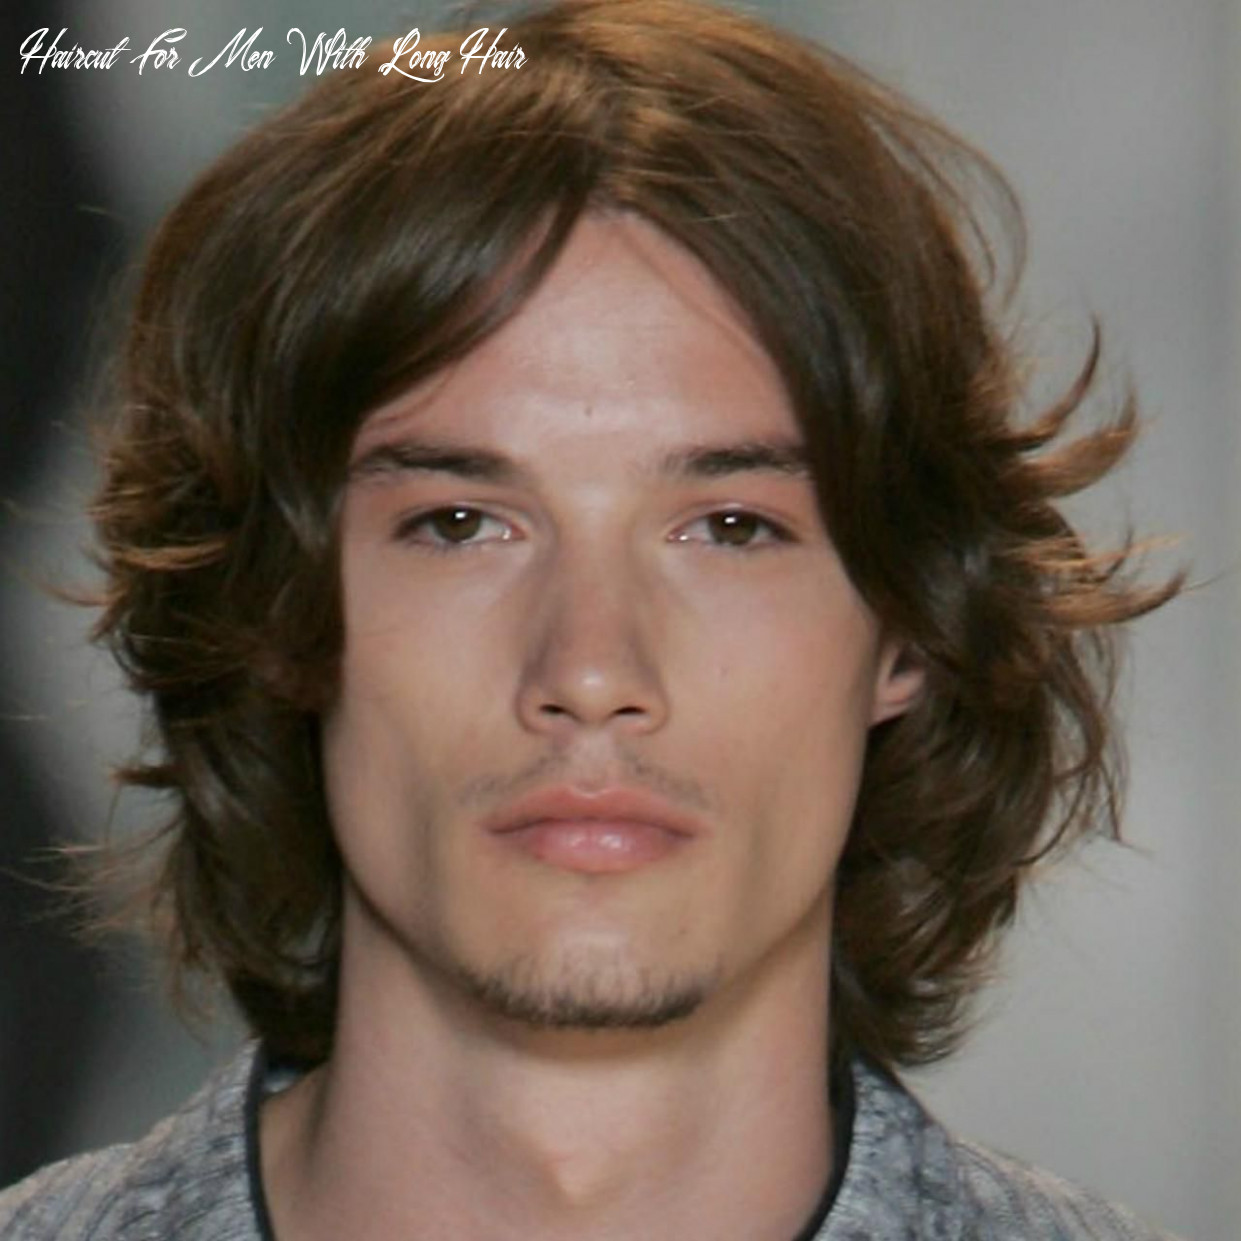 Long hairstyles for men picture gallery haircut for men with long hair